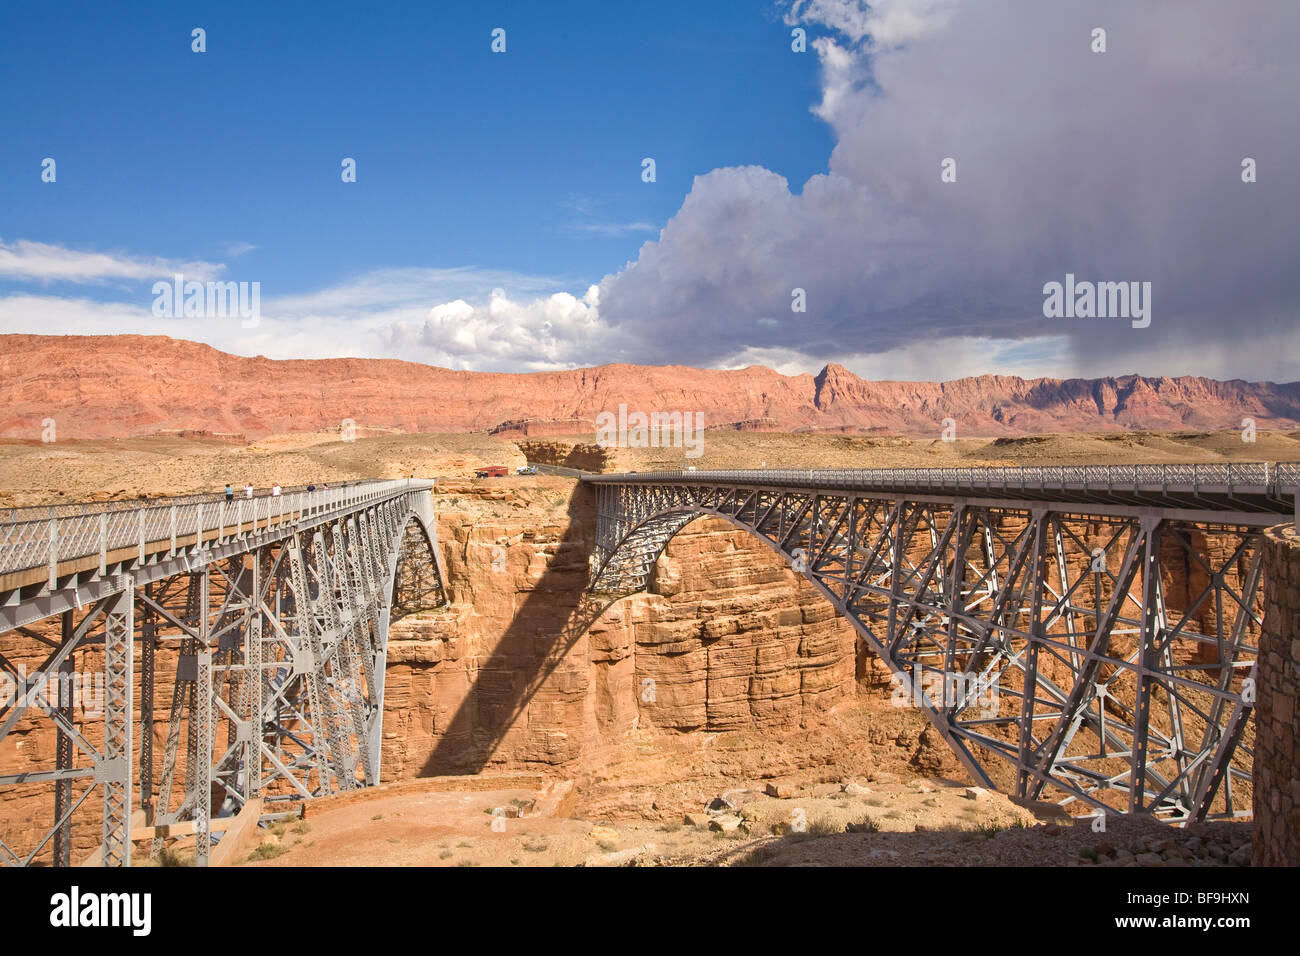 Navajo Bridges old and new over Colorado River on Highway 89A, Marble Canyon, Echo Cliffs in distance, Arizona, - Stock Image